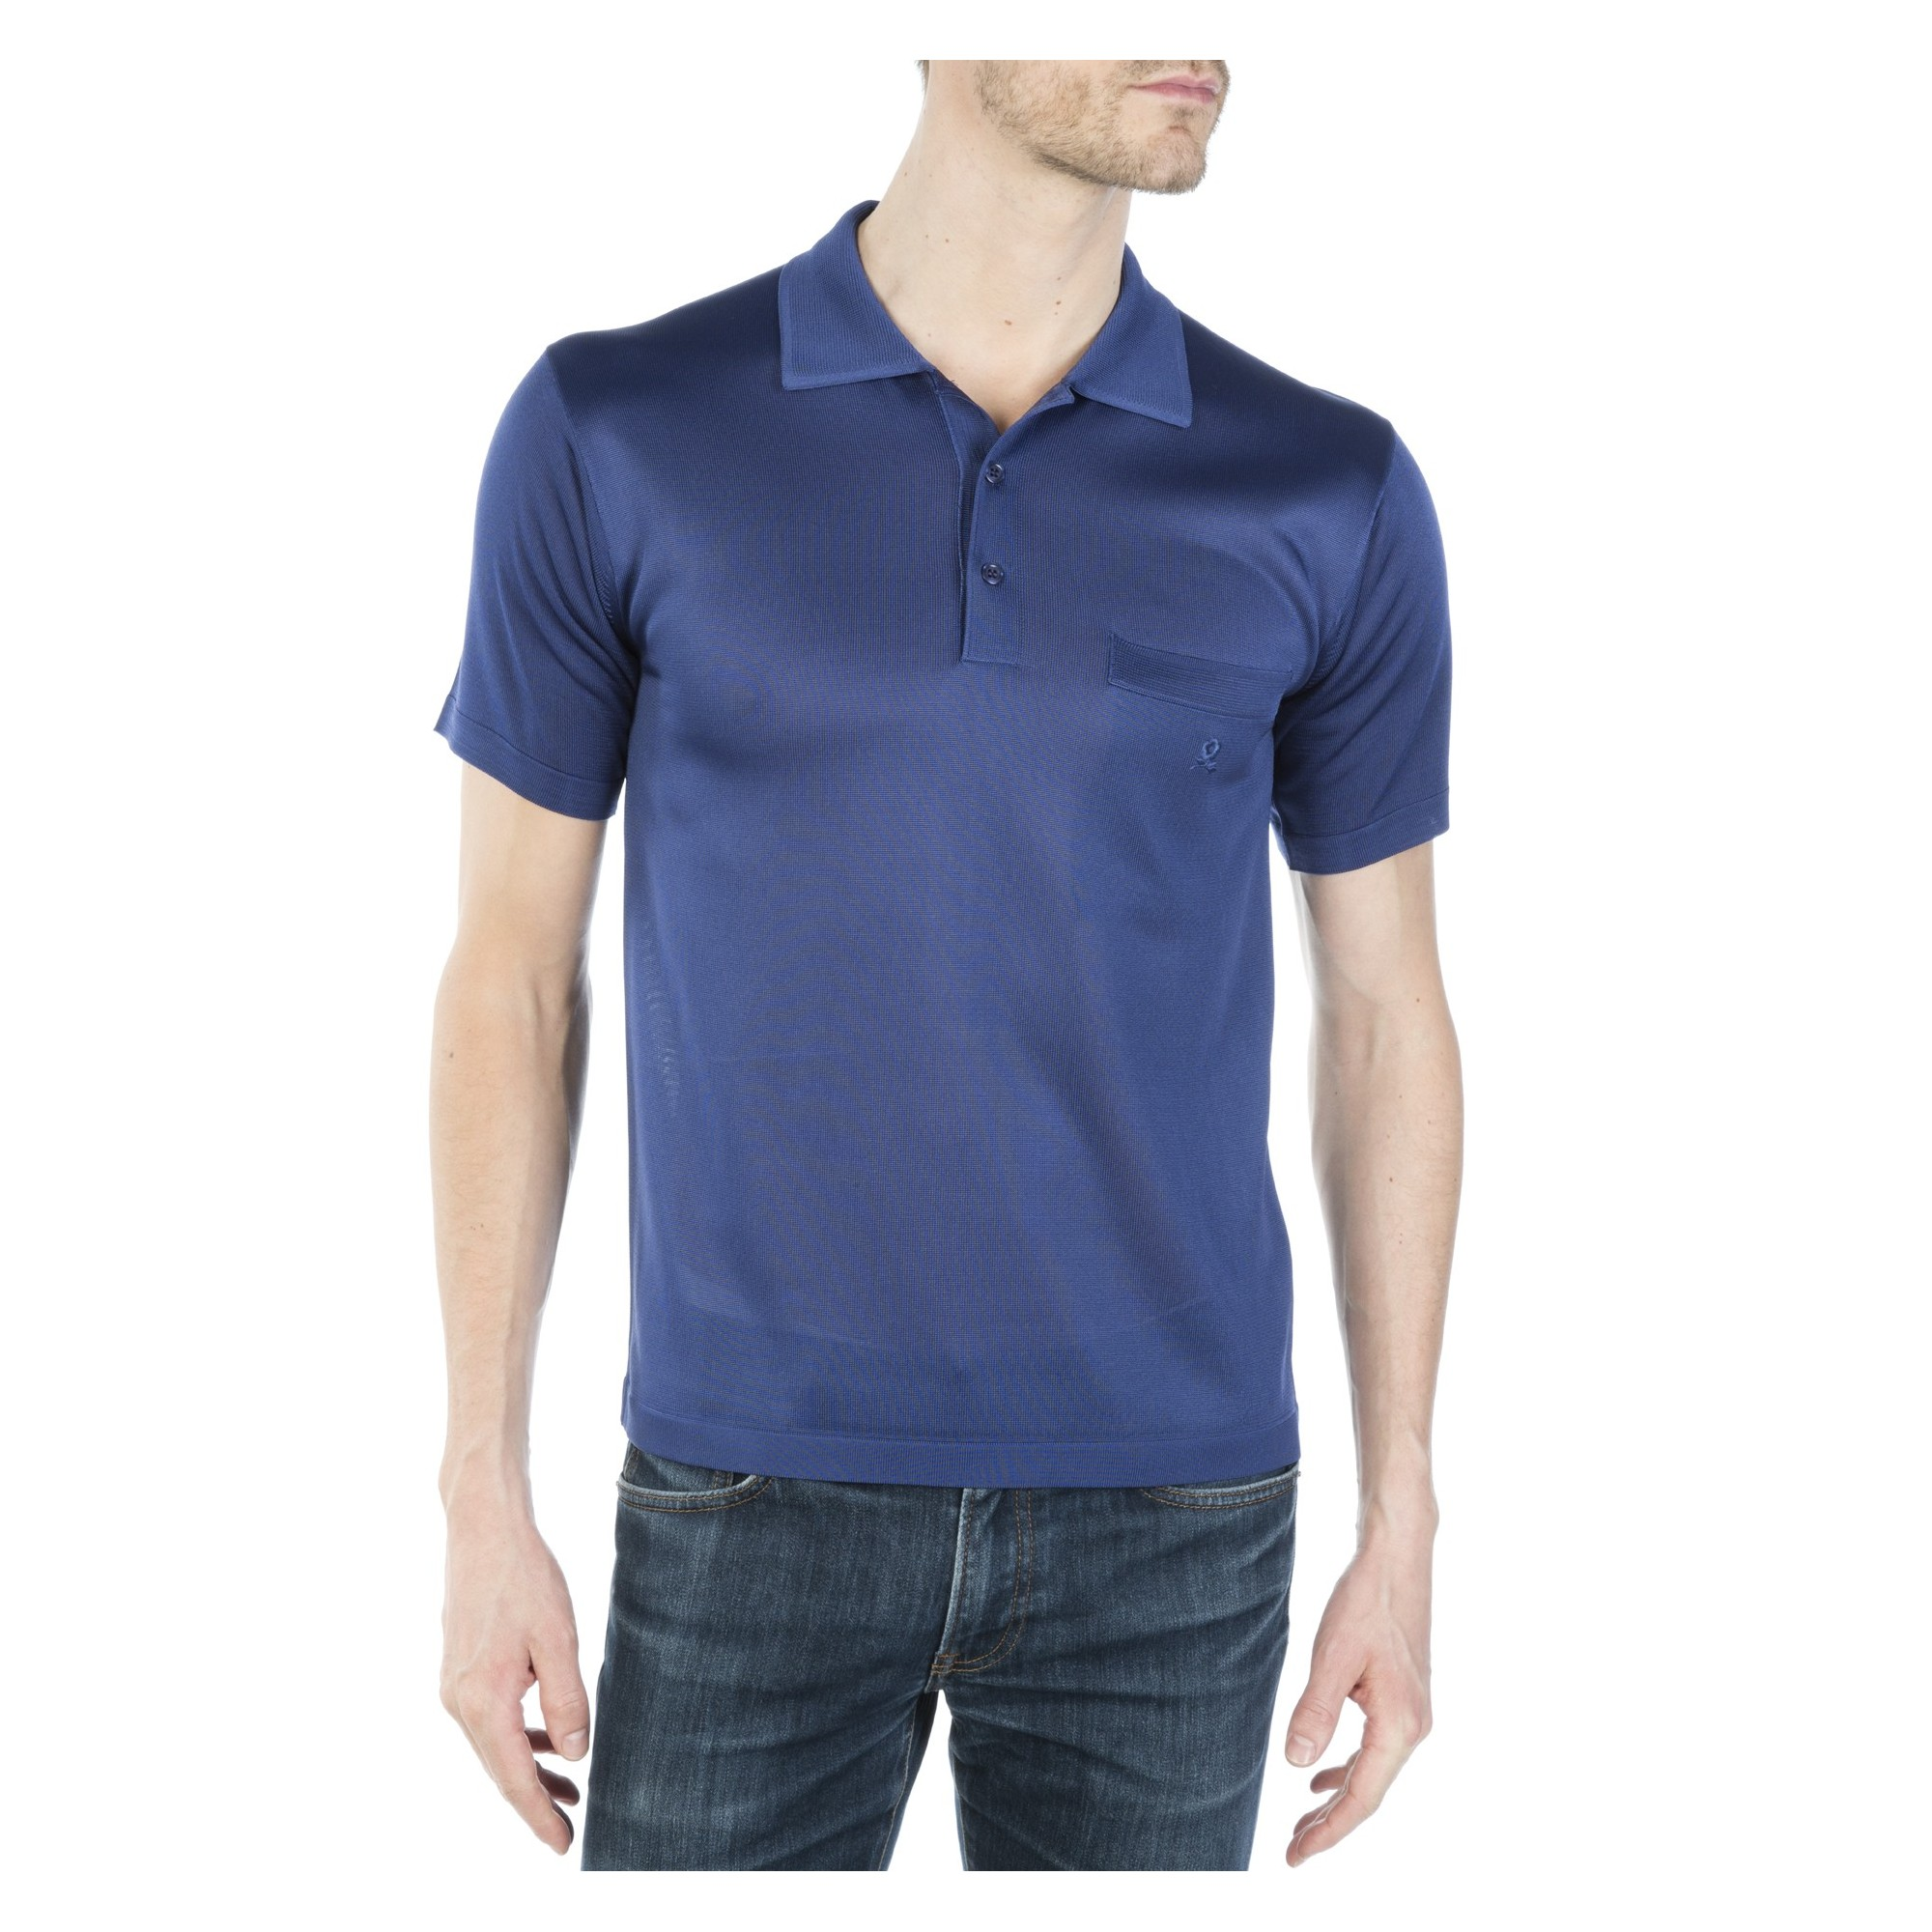 Man's polo of quality made of fil lumiere